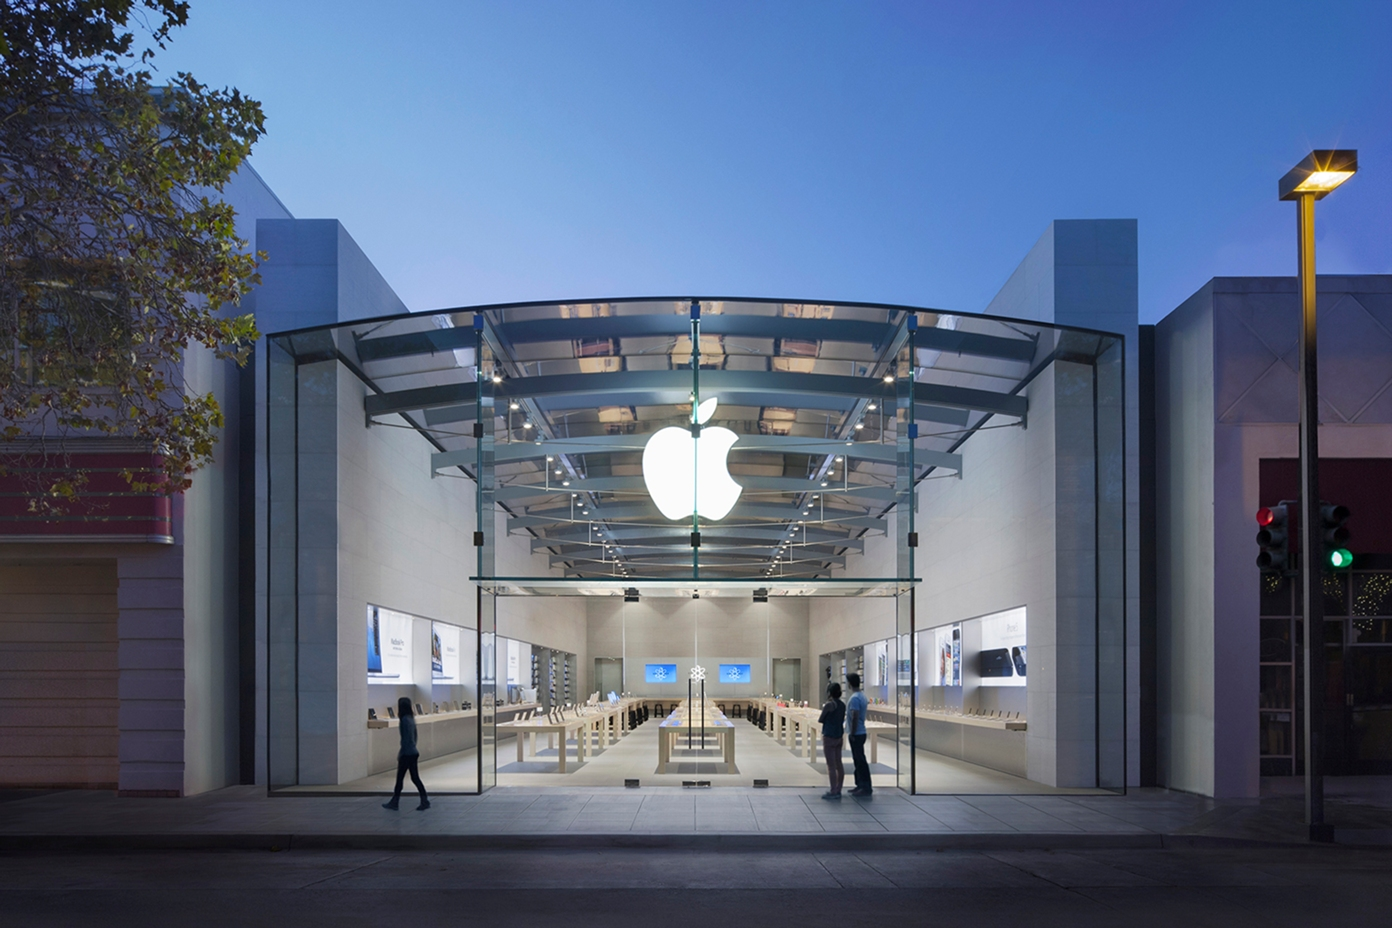 An image showing Apple's flagship retail store in Palo Alto, California, before it closed for renovations